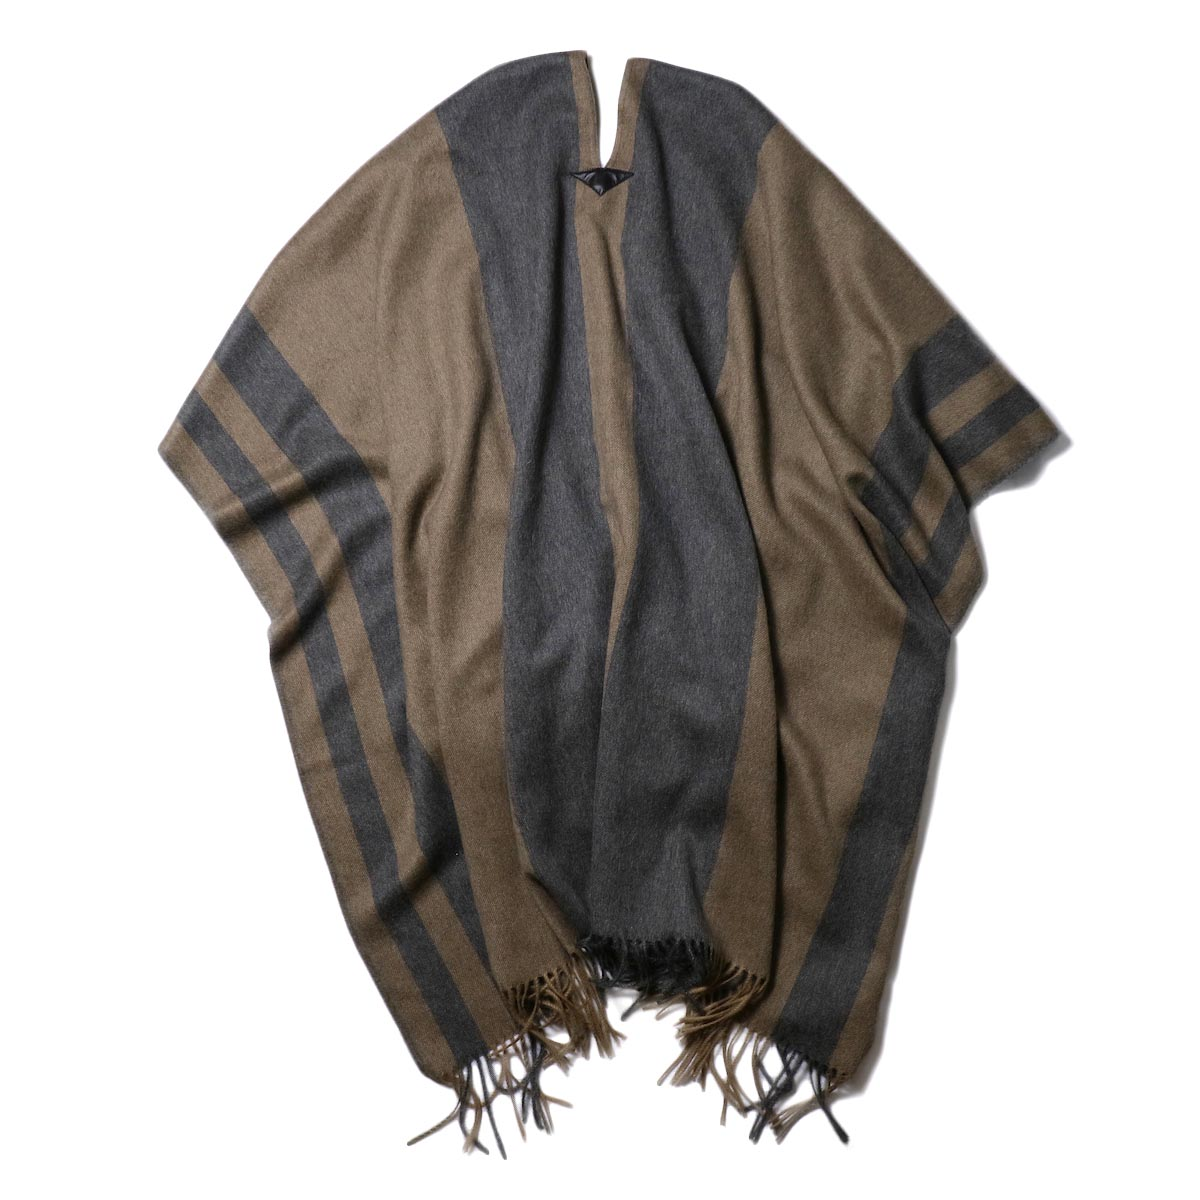 YLEVE / The Inoue Brothers Double Face Brushed Poncho (khaki beige) 背面